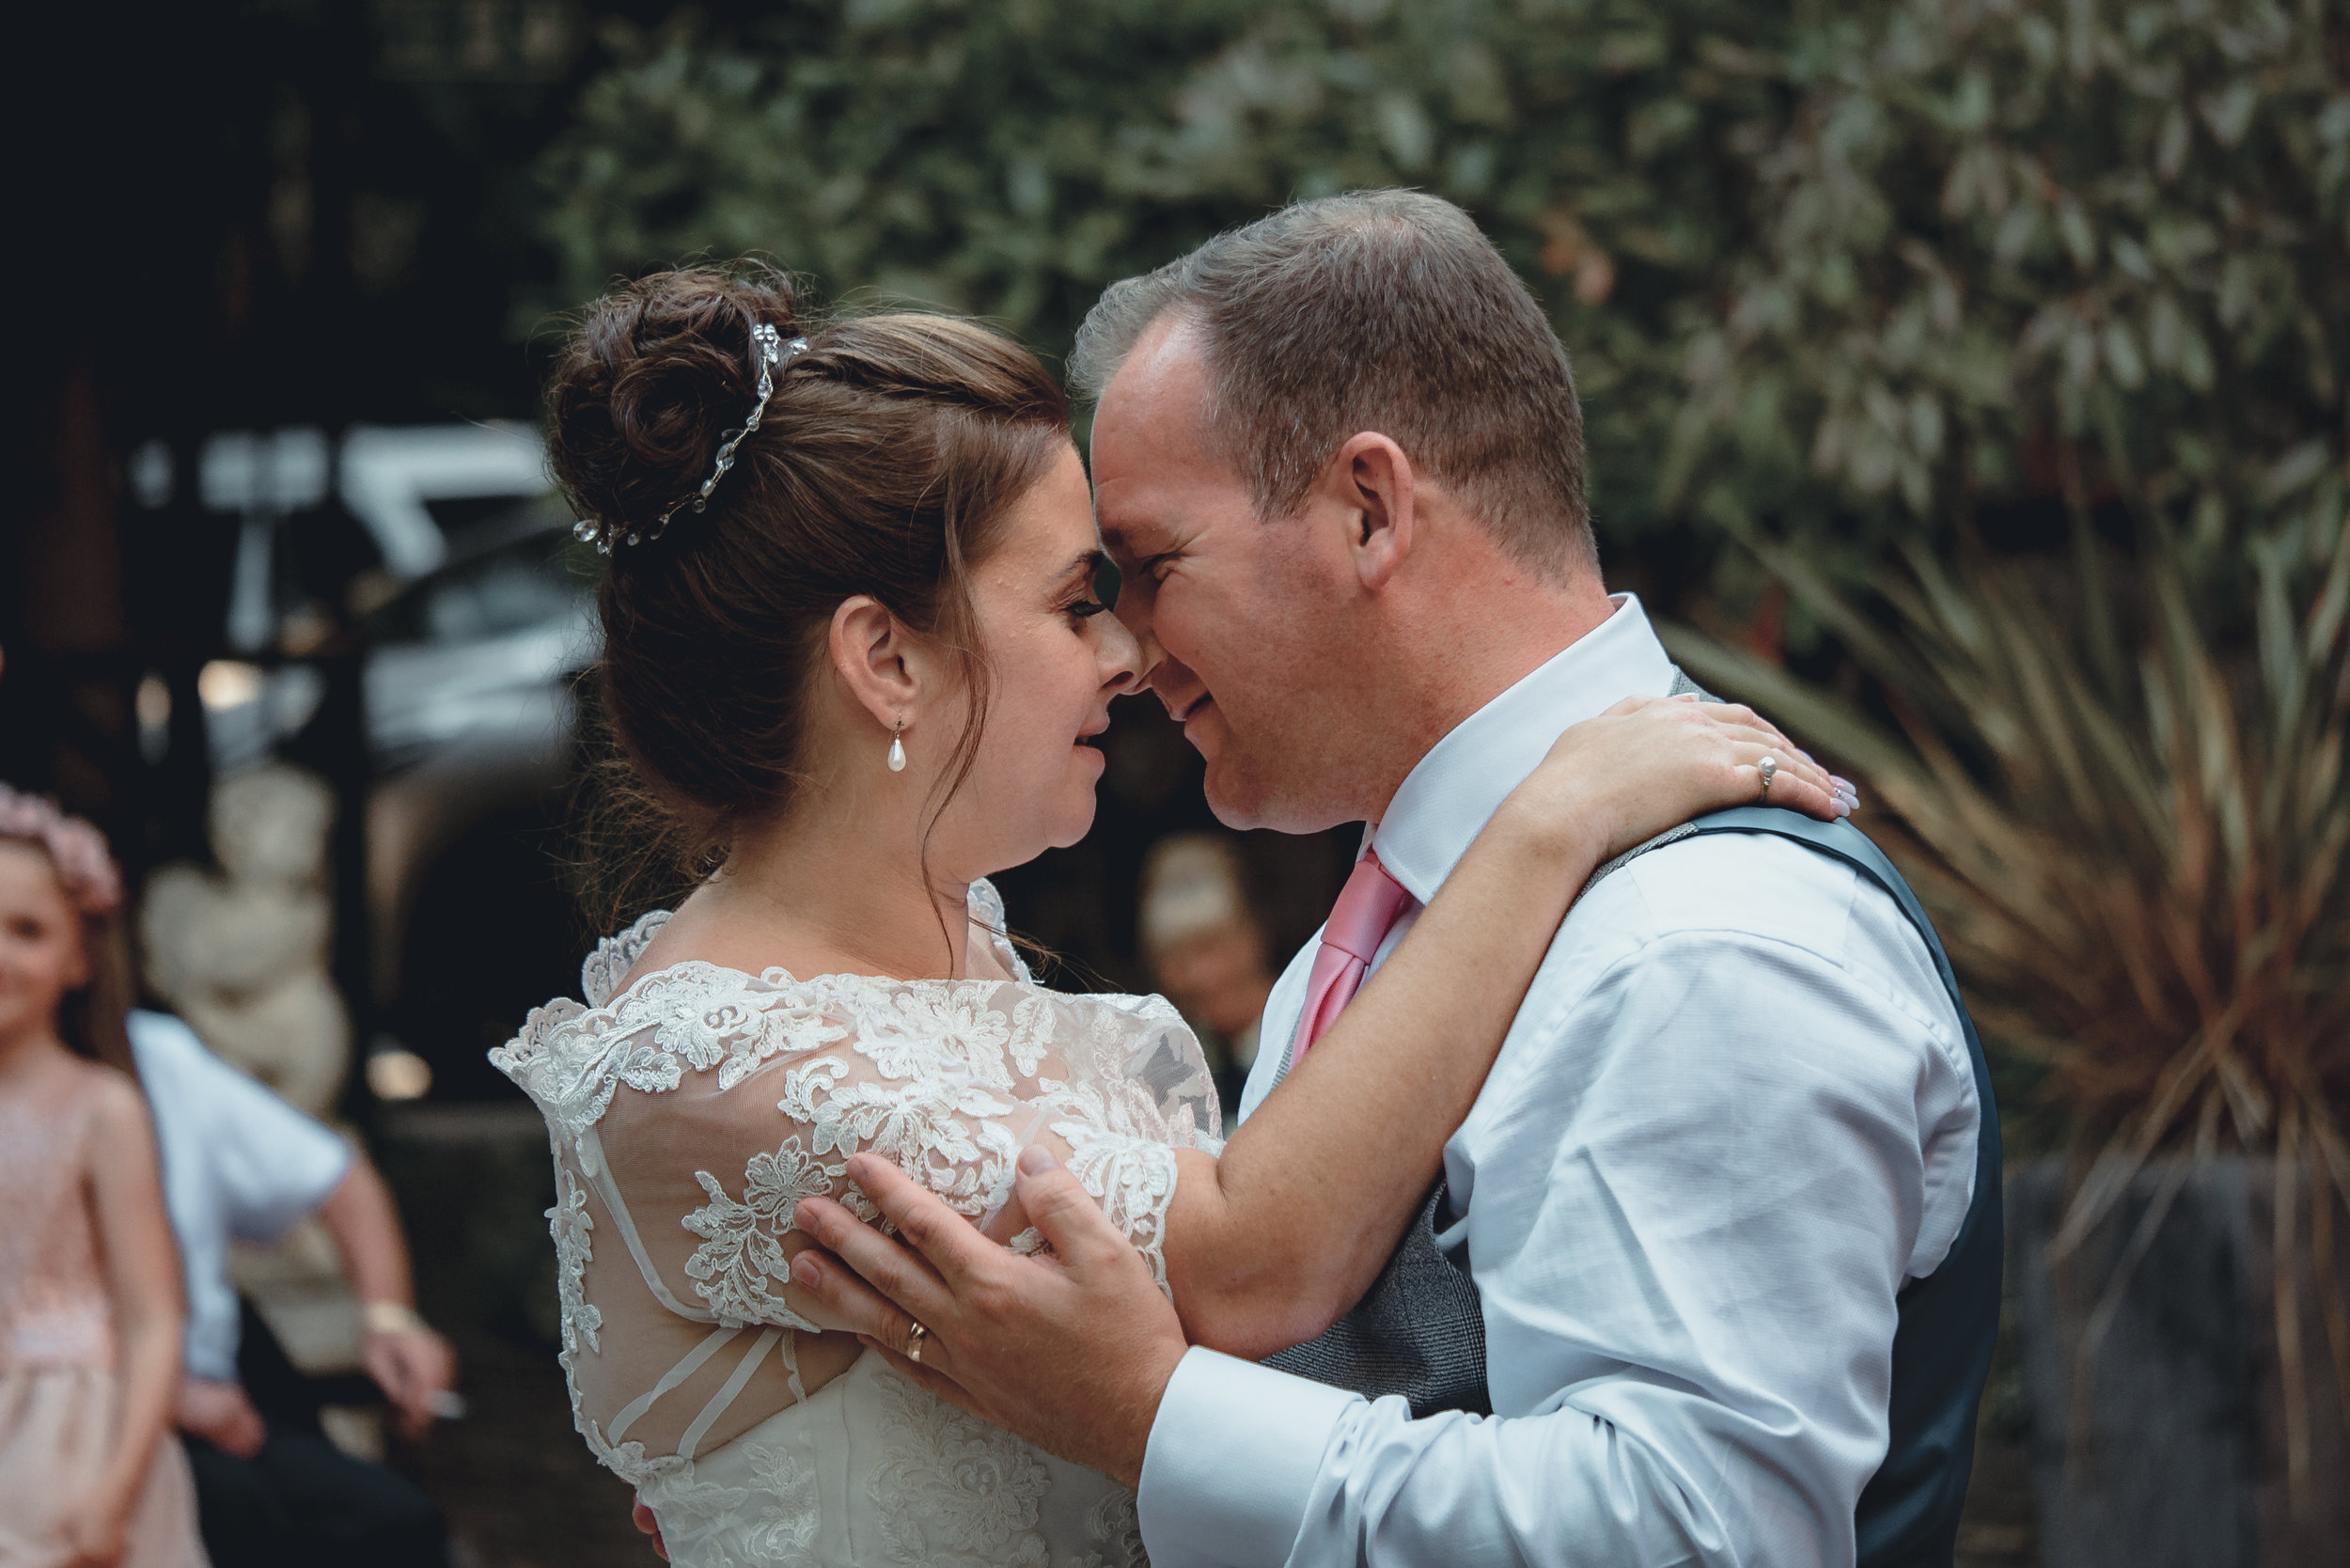 £800 package - 4 hours coverage starting from just before the ceremony.Secure your date for just £100 and pay in instalments.